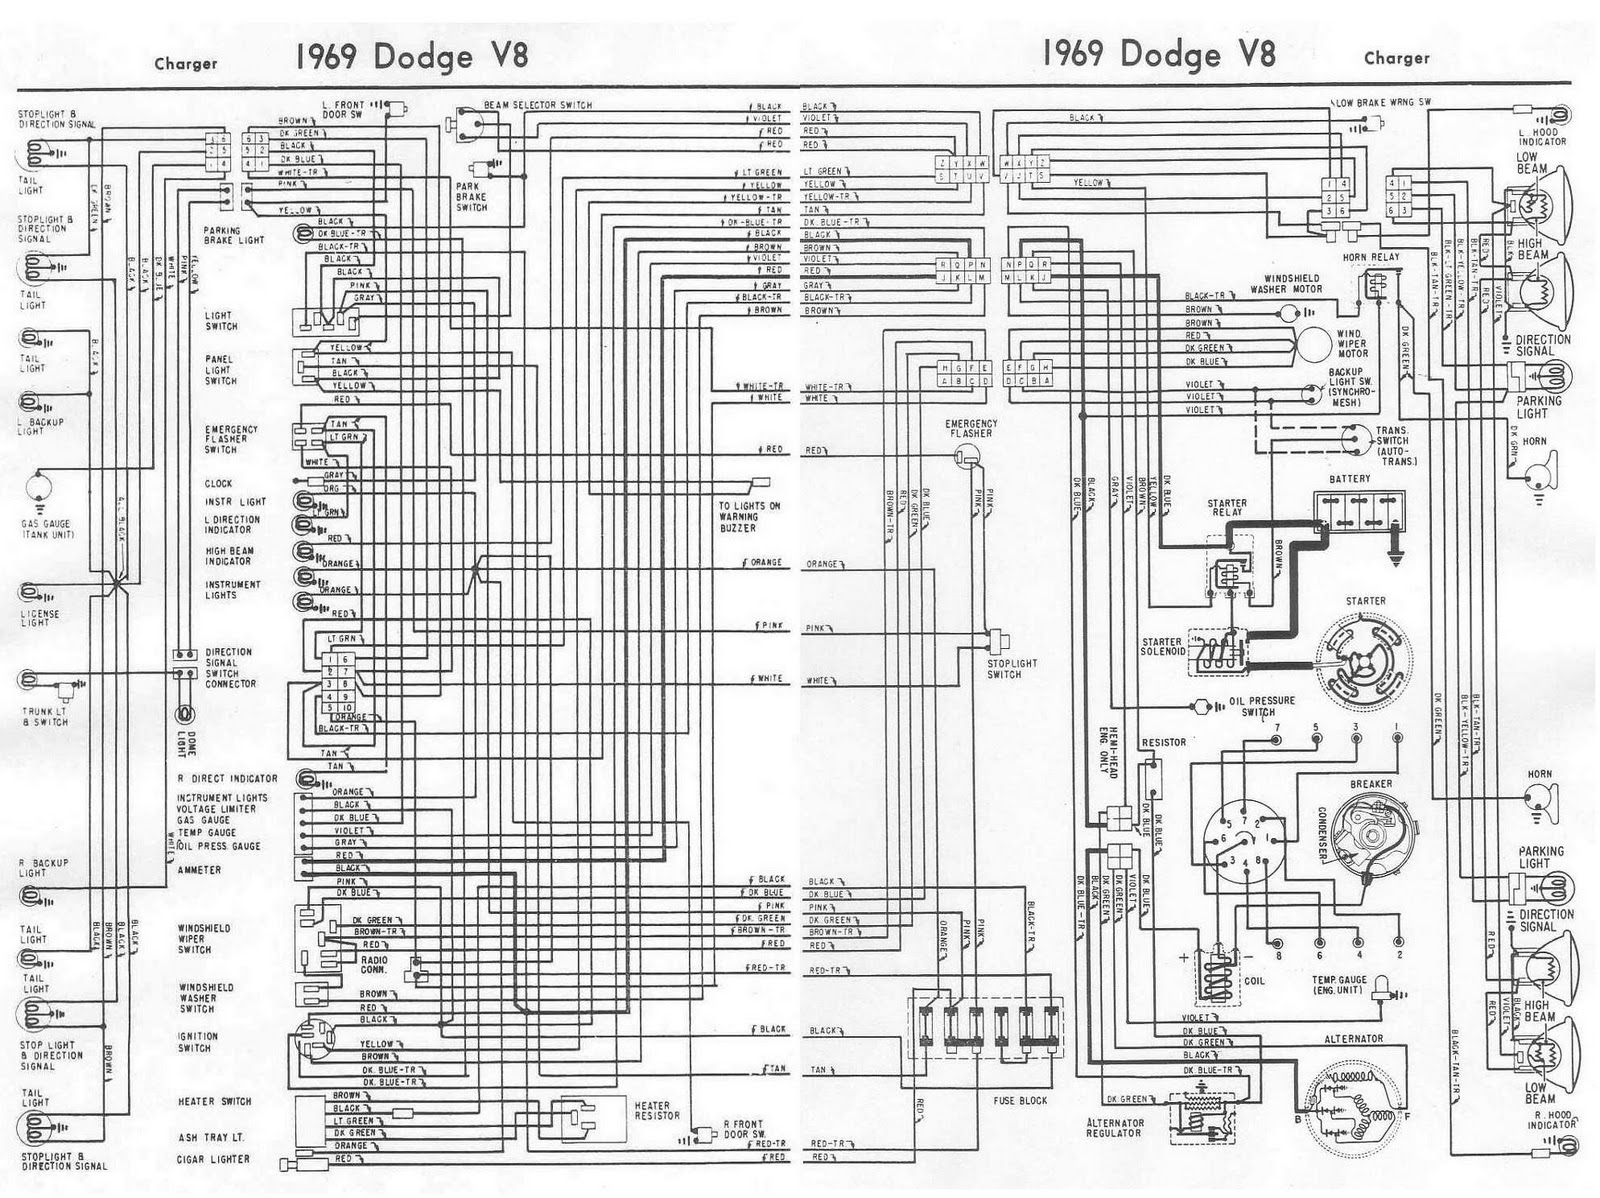 1967 Dodge Alternator Wiring Start Building A Diagram 1991 1969 Plymouth Schematic Detailed Schematics Rh Jvpacks Com 2002 Ram 3500 Two Wire